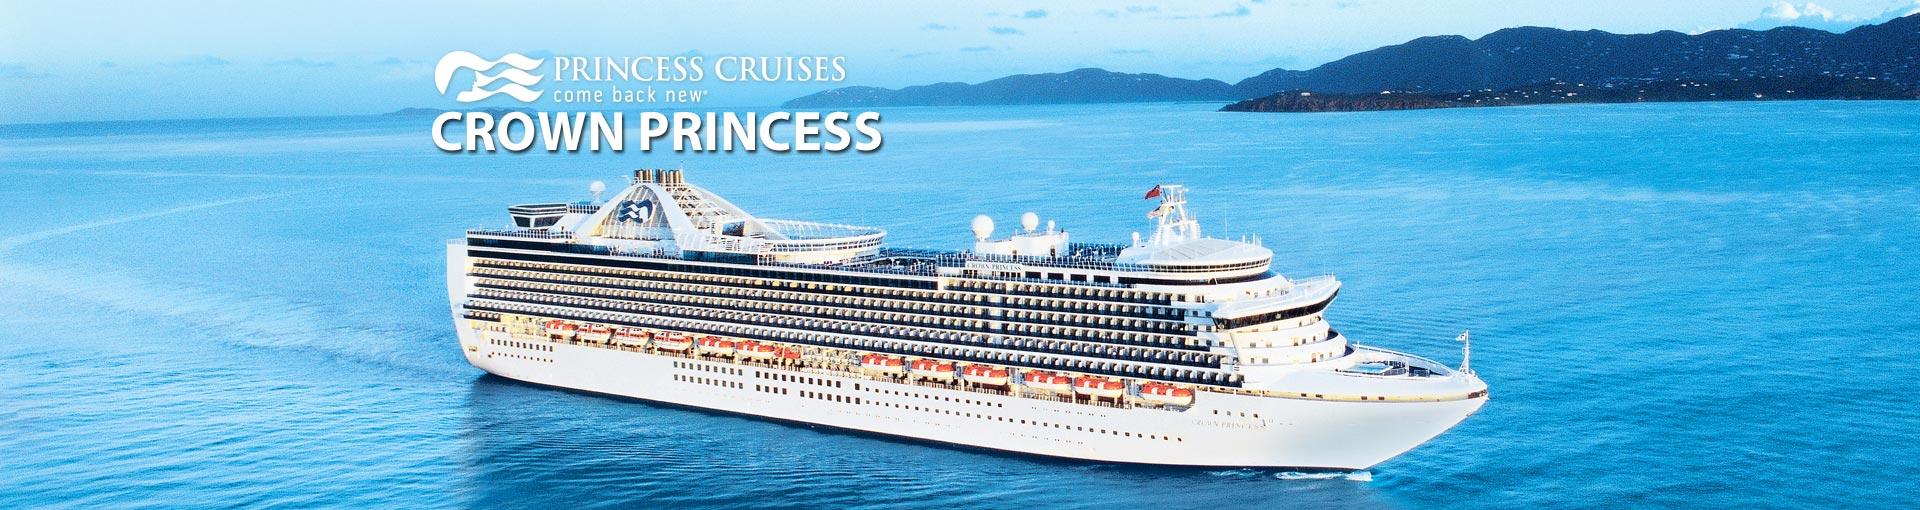 Princess Cruises Crown Princess cruise ship